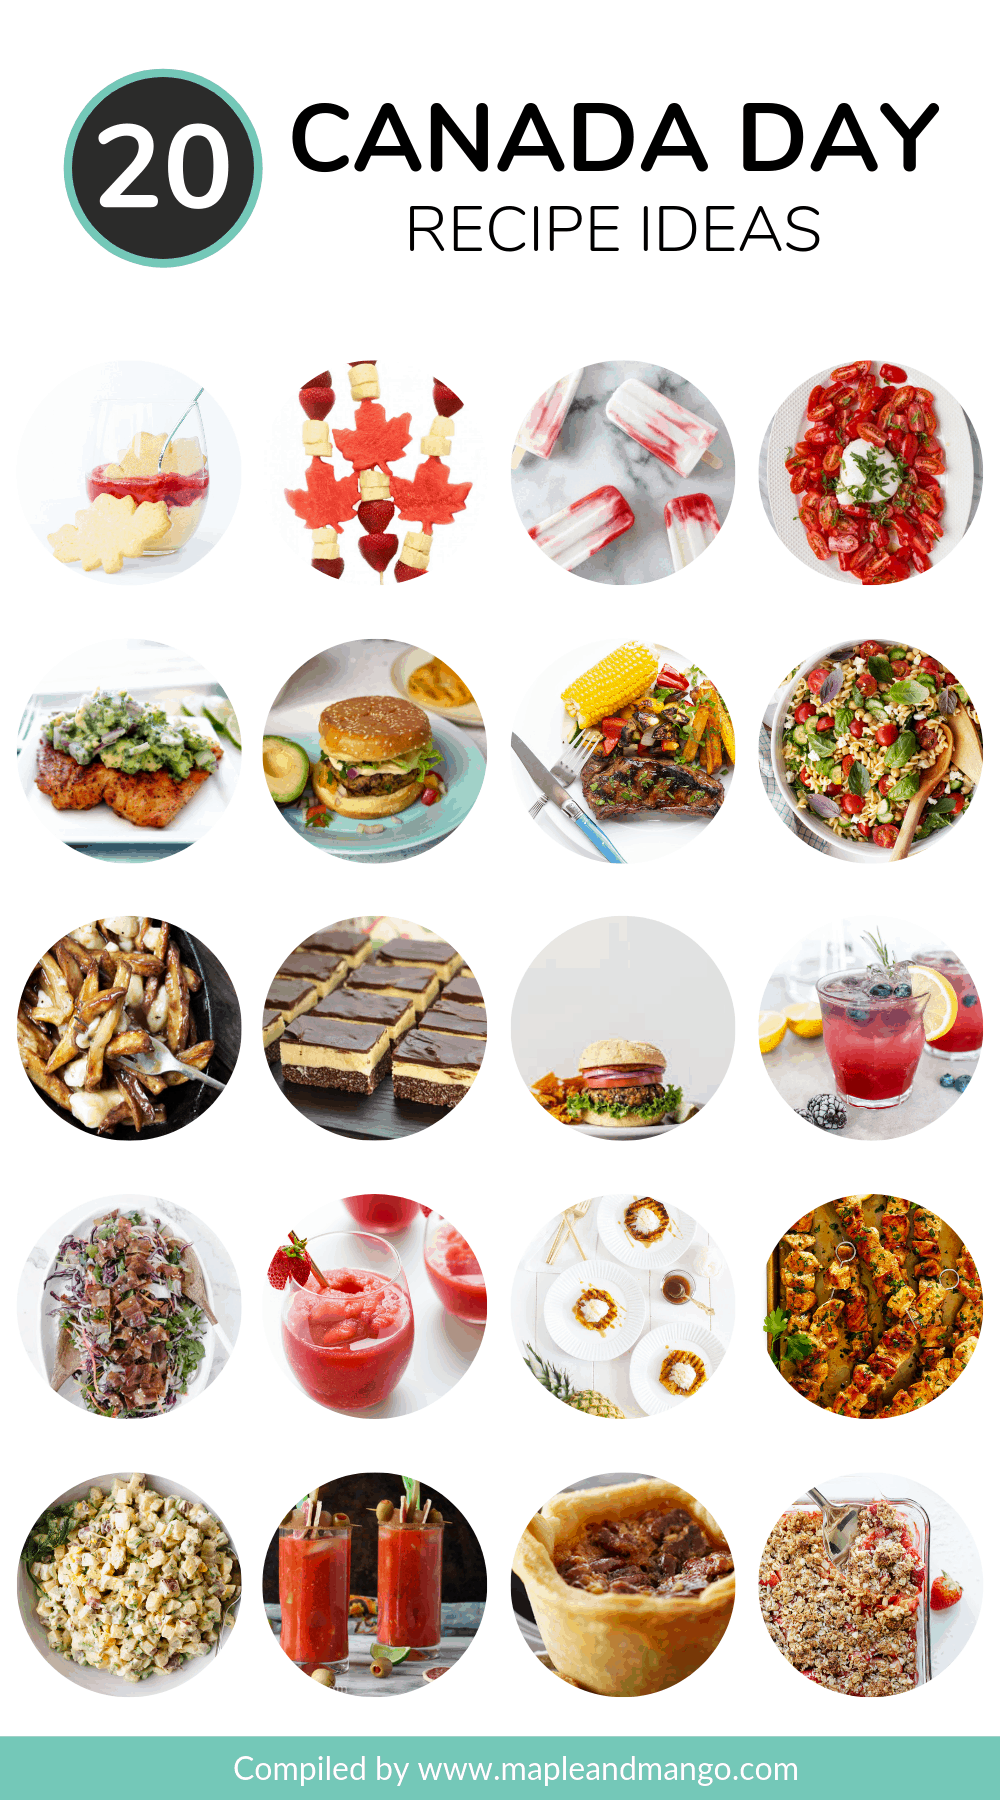 Pinterest image featuring a photo collage of 20 Canada Day recipe ideas